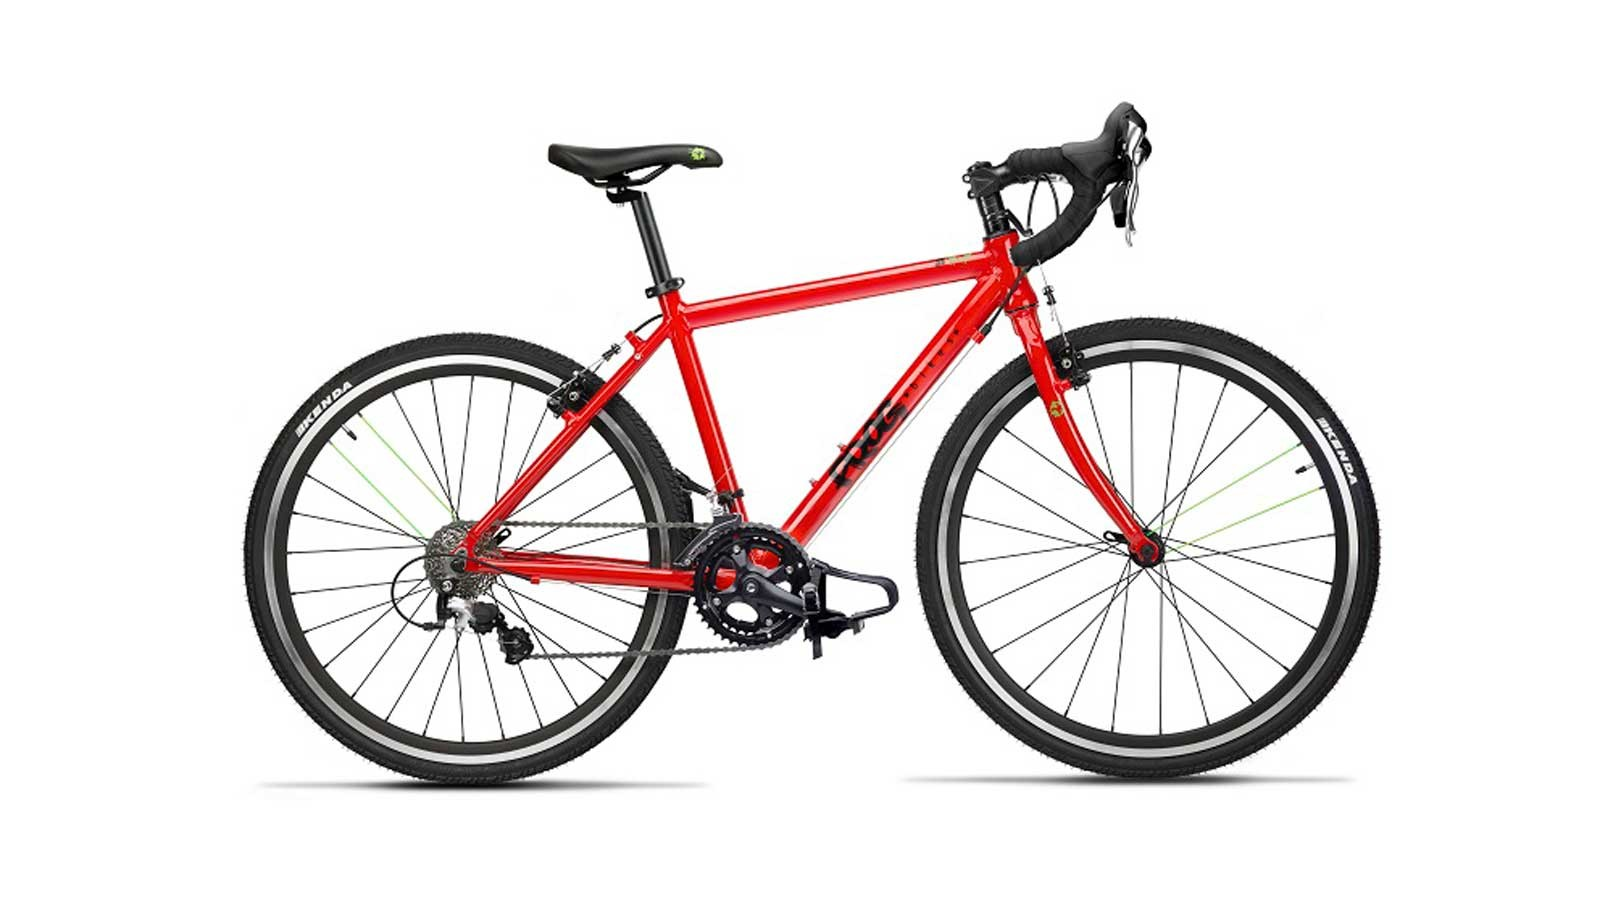 The Frog Road 70 has an alloy frame